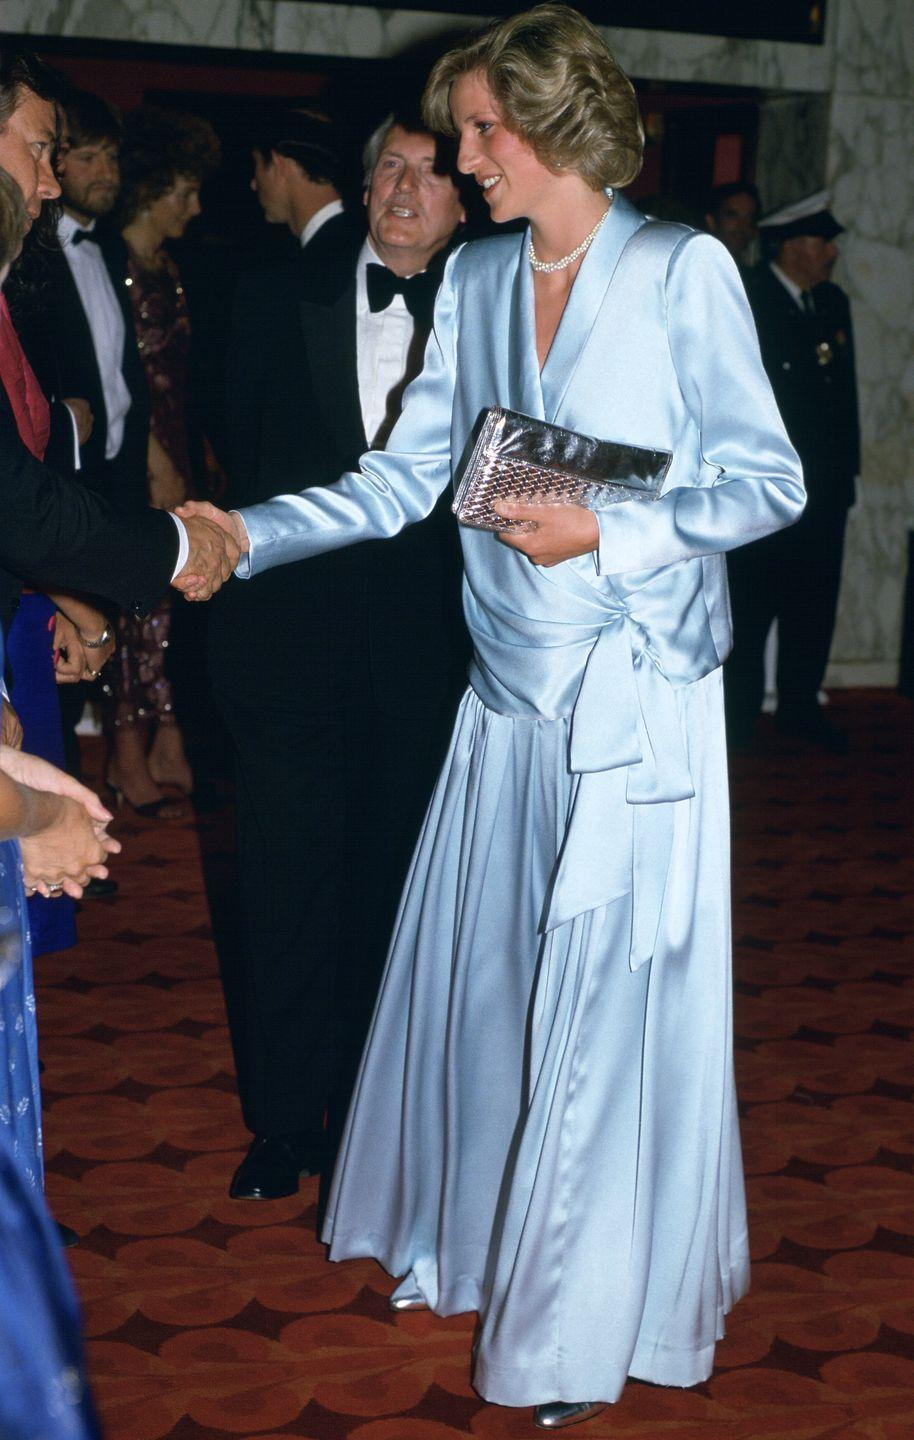 """<p>The empire waistline wasn't the only comfortable option for maternity formal wear. This satin evening gown designed by Catherine Walker accommodated and accentuated Princess Diana's bump with a drop waist silhouette (perhaps designed as an homage to the <a href=""""https://www.elle.com/fashion/personal-style/g28423/maternity-style-evolution/?slide=22"""" rel=""""nofollow noopener"""" target=""""_blank"""" data-ylk=""""slk:maternity styles of the 1920's"""" class=""""link rapid-noclick-resp"""">maternity styles of the 1920's</a>). </p>"""